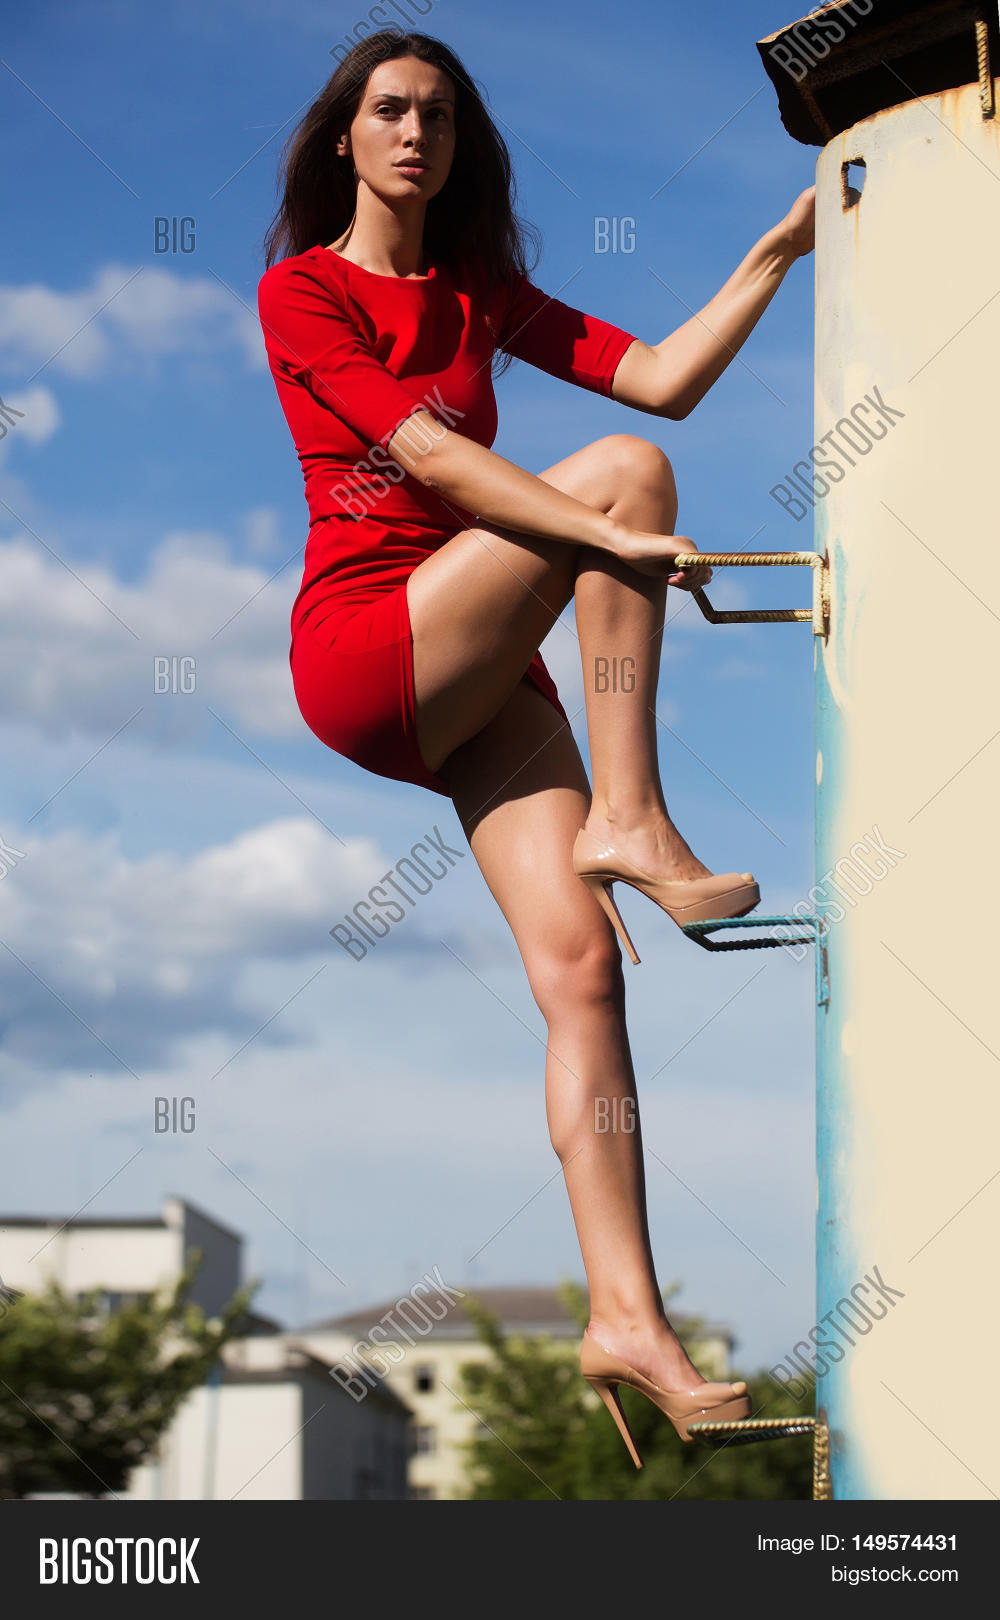 ca3edbb31ff young sexy fashionable woman or girl with long brunette hair and pretty  face in stylish red dress on slim body and shoes on high heels climbing on  house ...